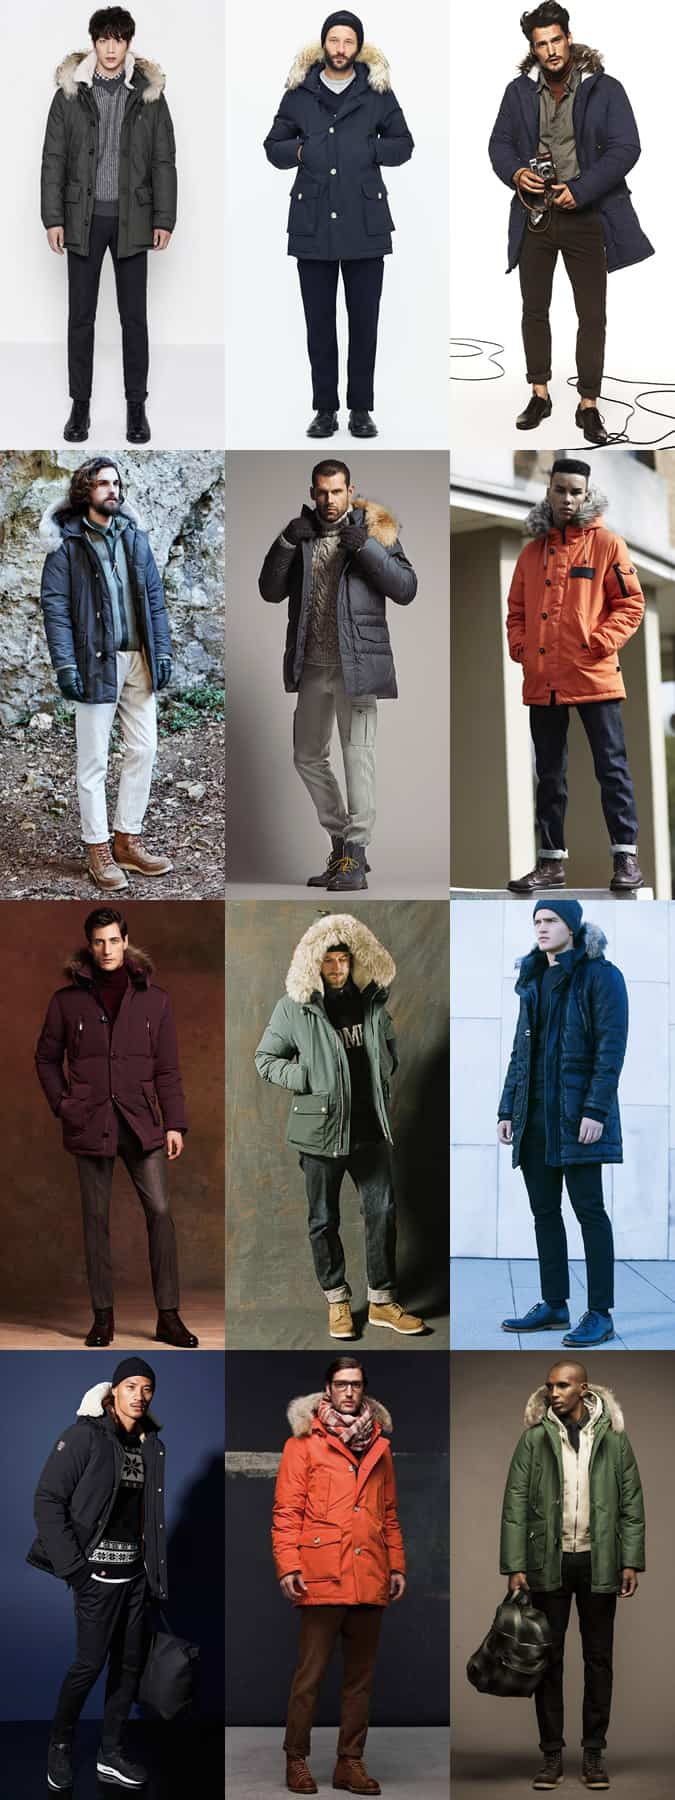 Men's Winter Parka Jackets - Winter/Apres-Ski Outfit Inspiration Lookbook